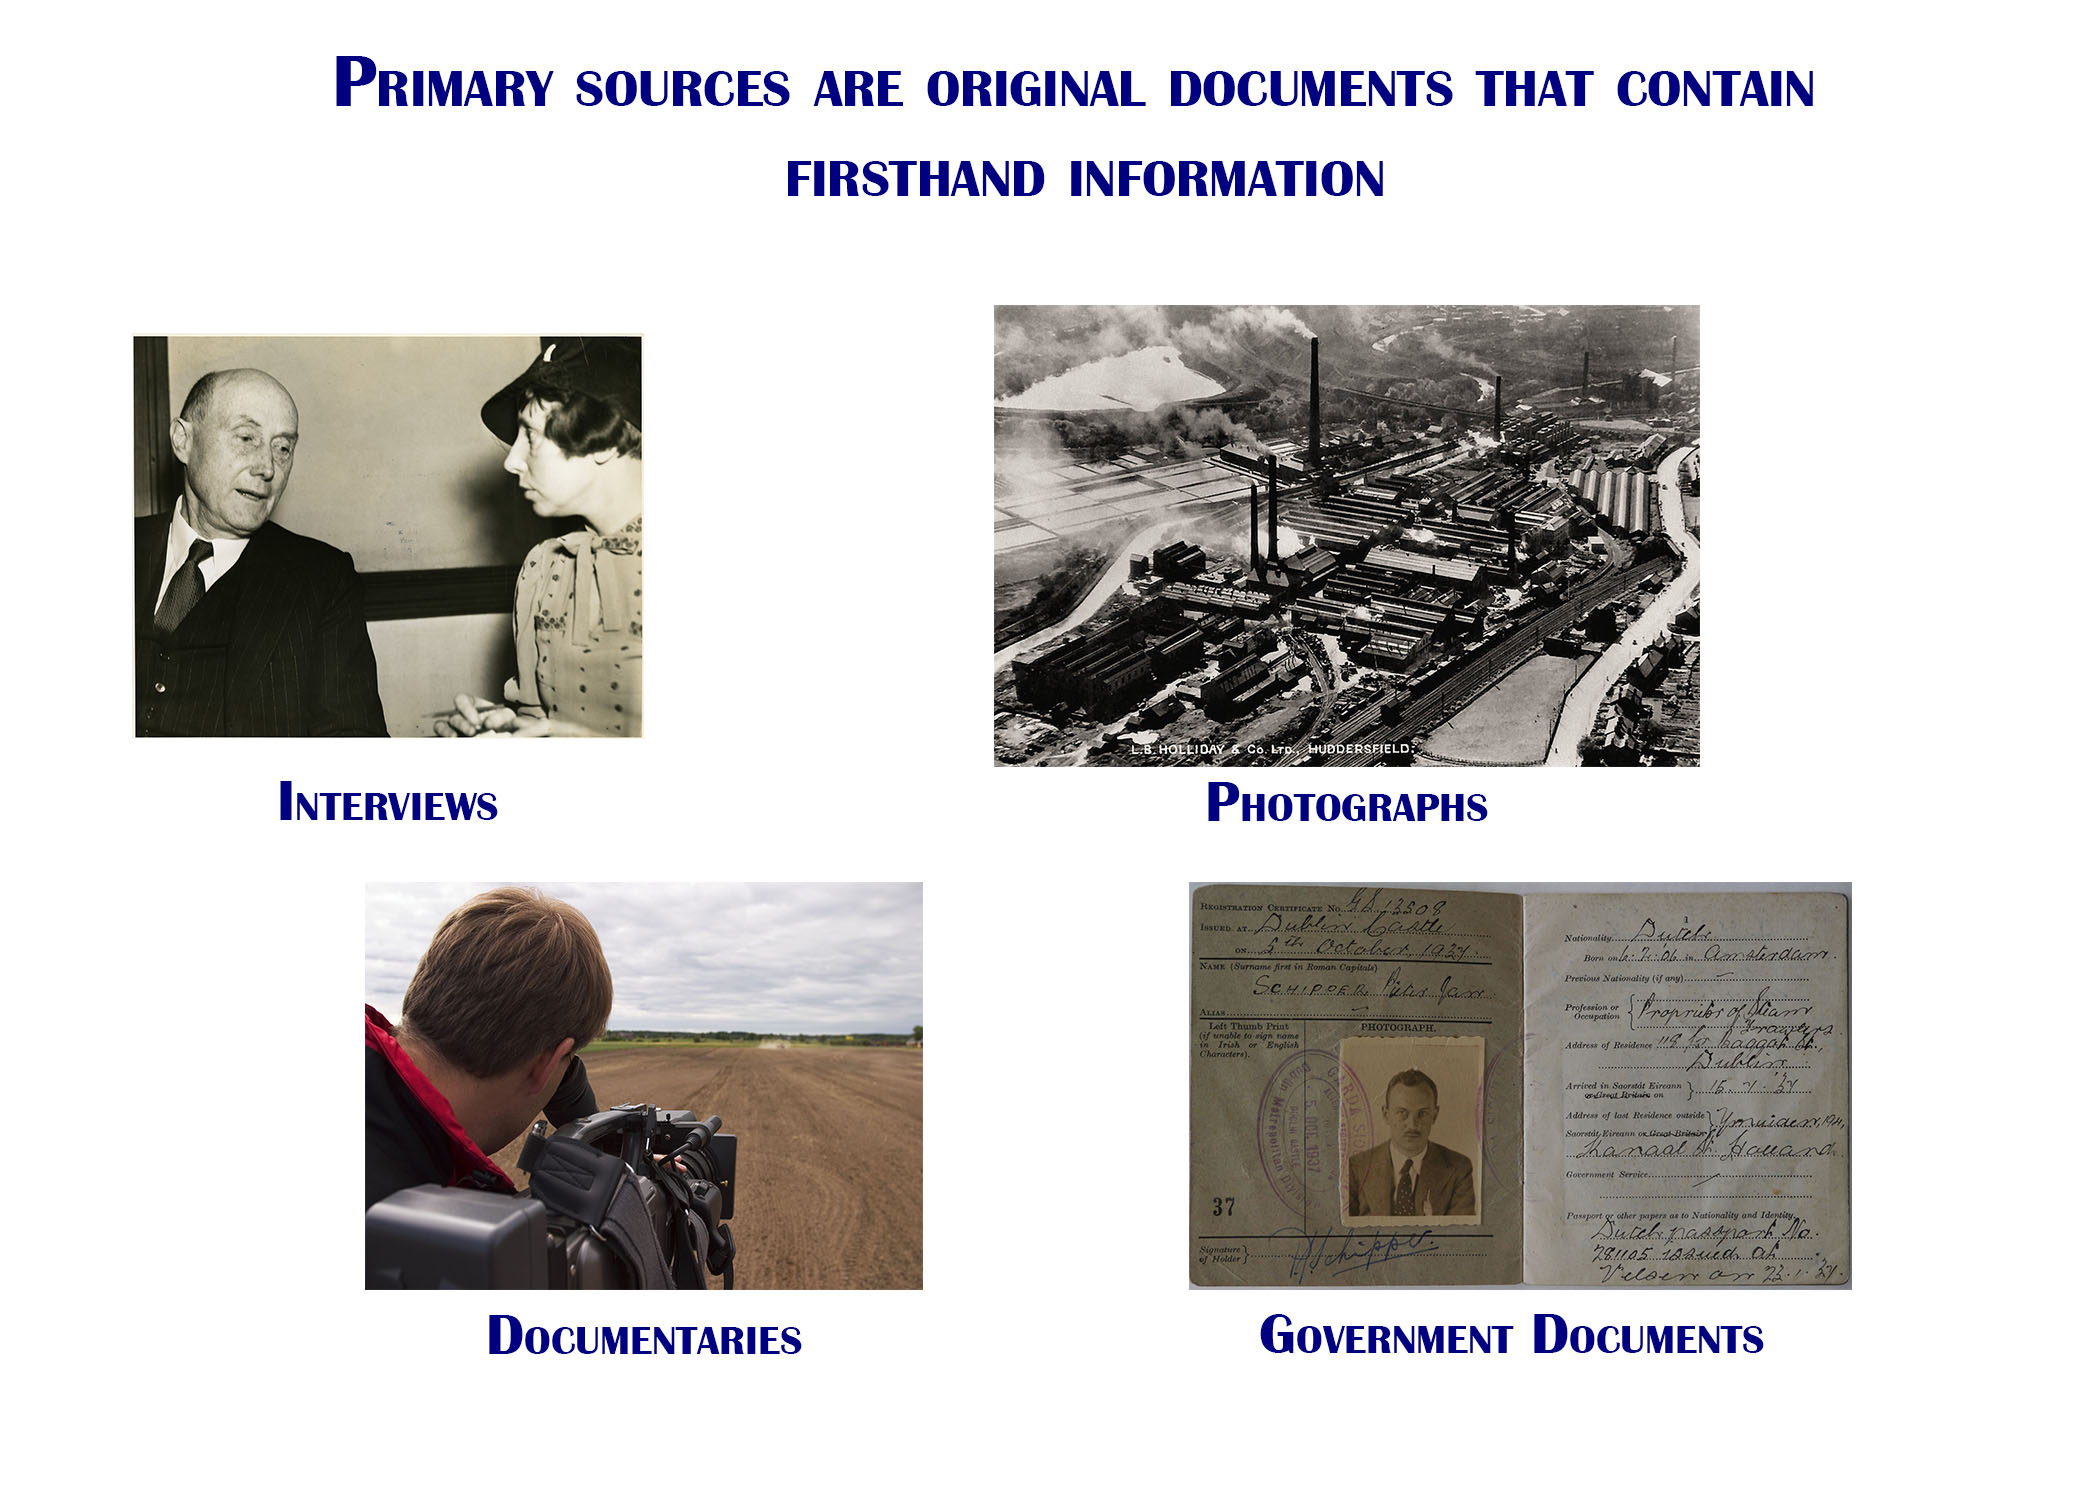 Primary sources are original documents that contain firsthand information